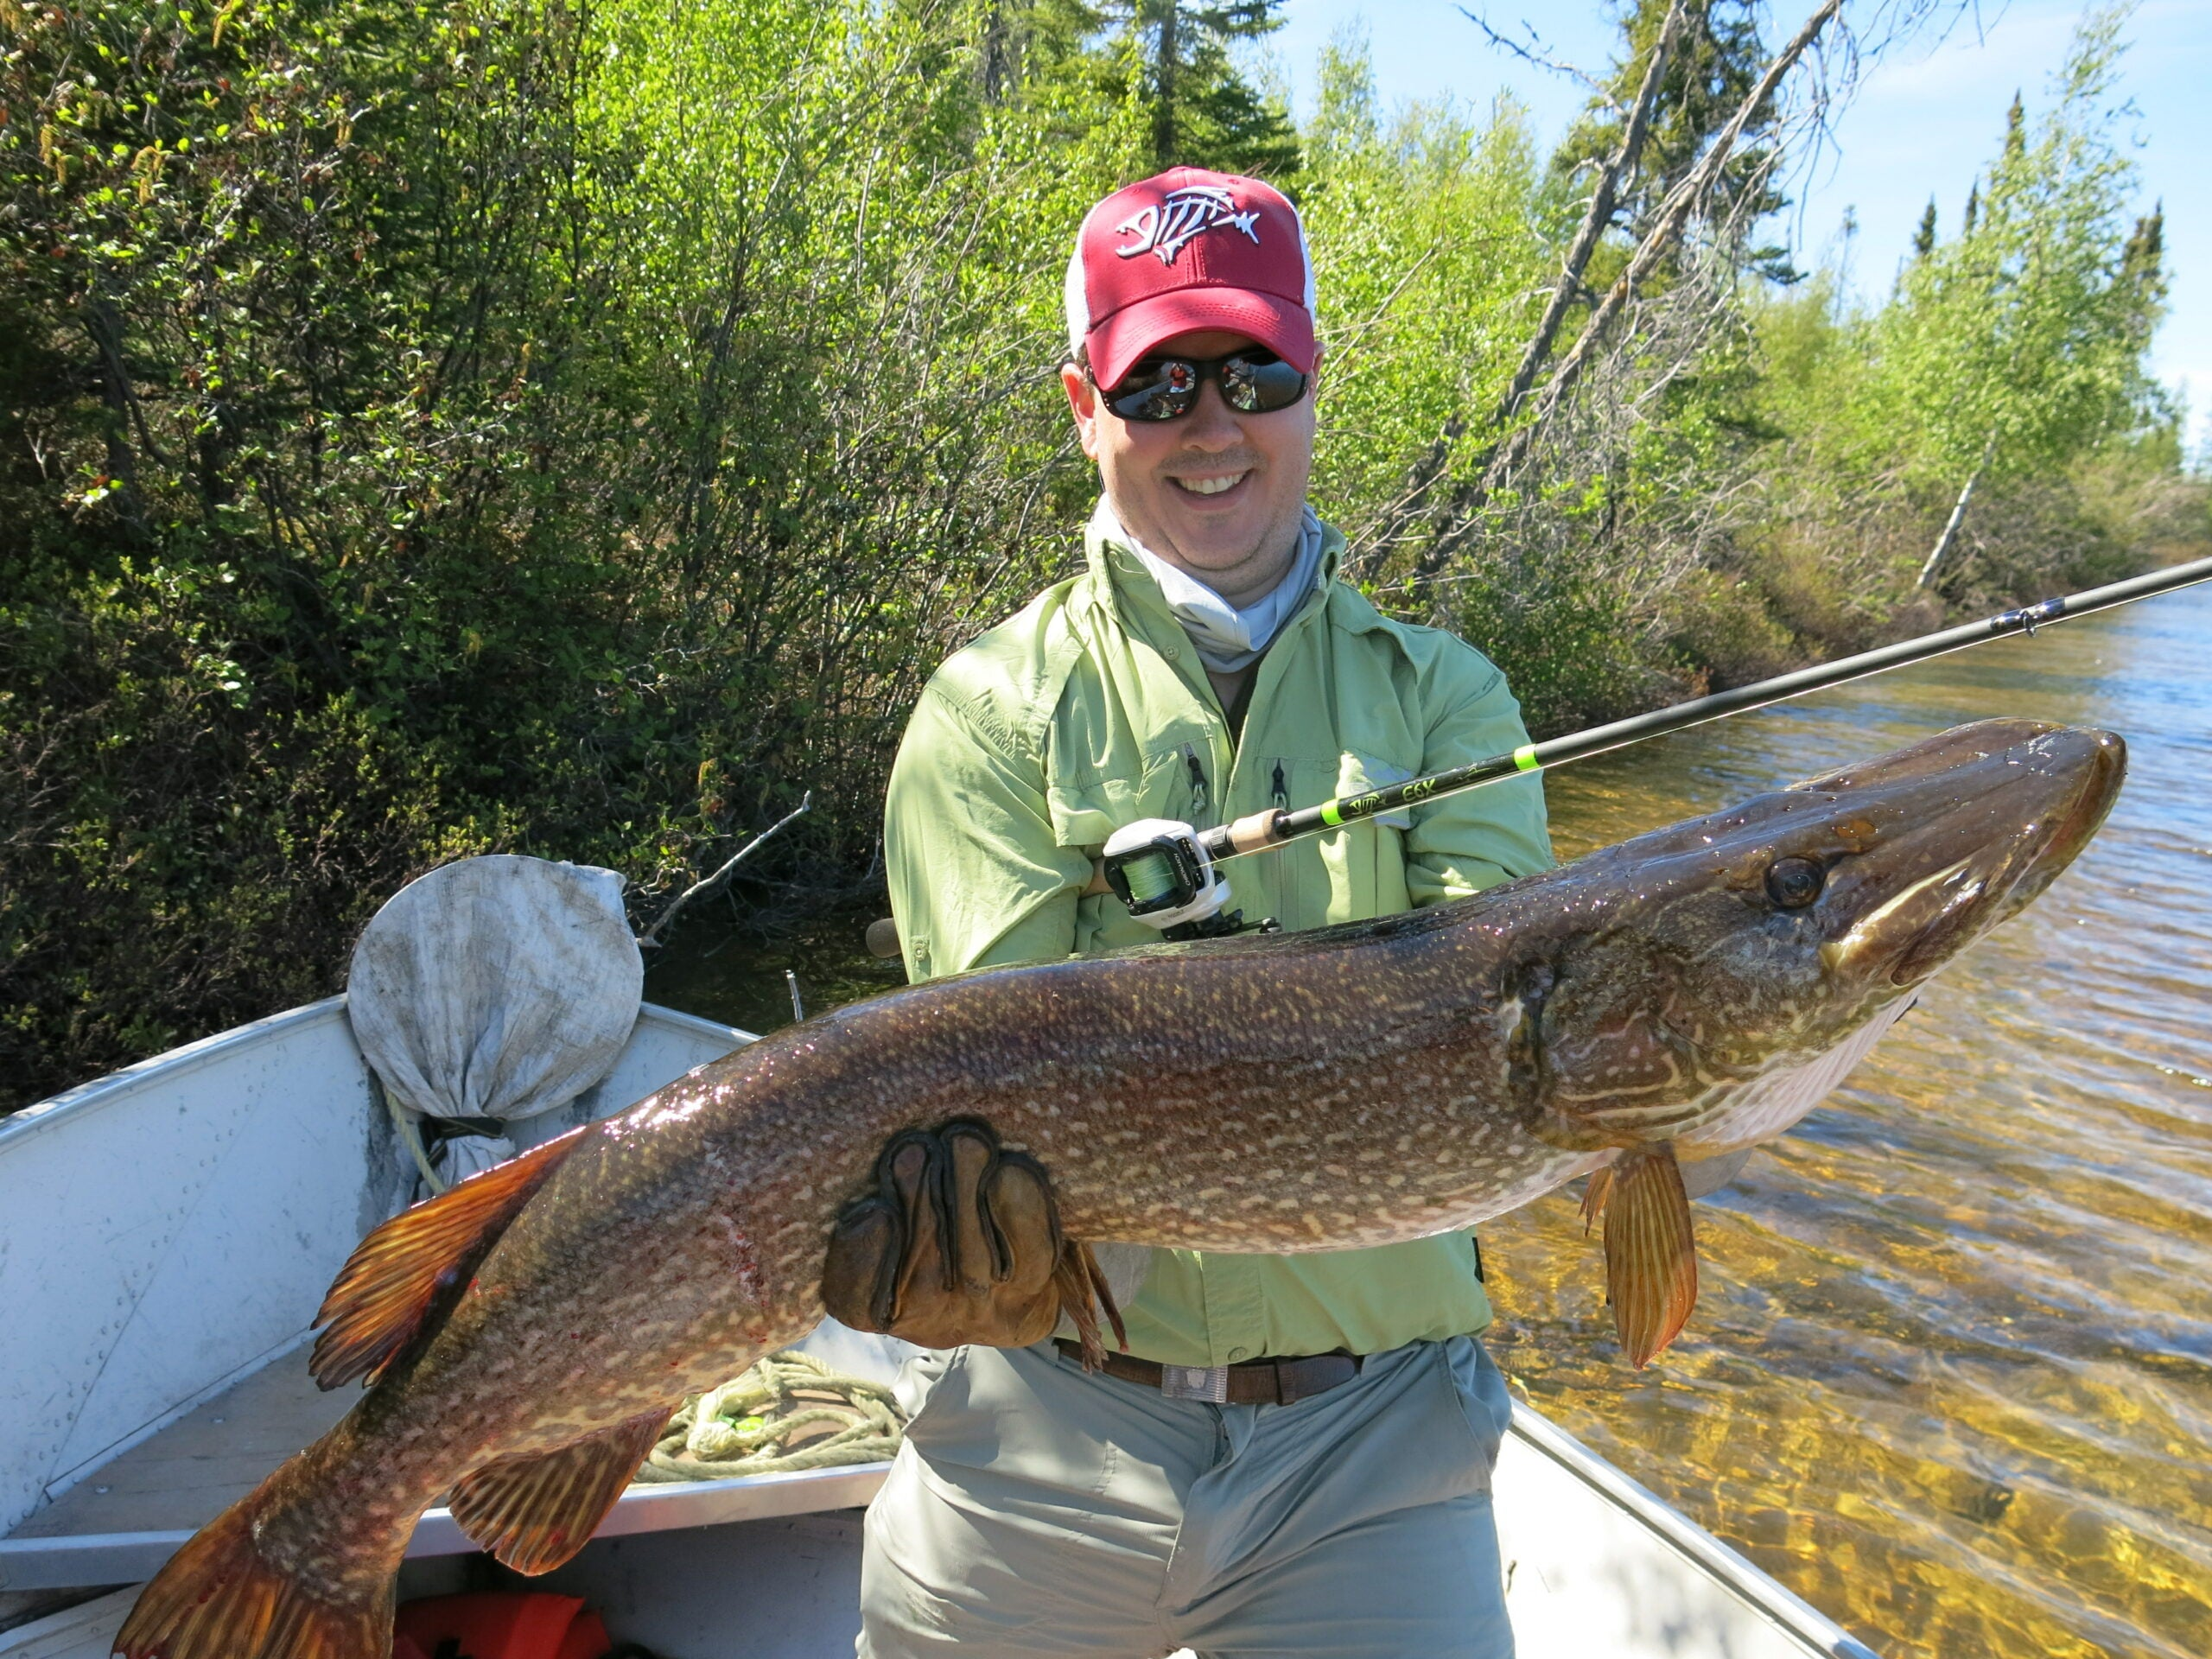 Rod Review: E6X Series from G. Loomis